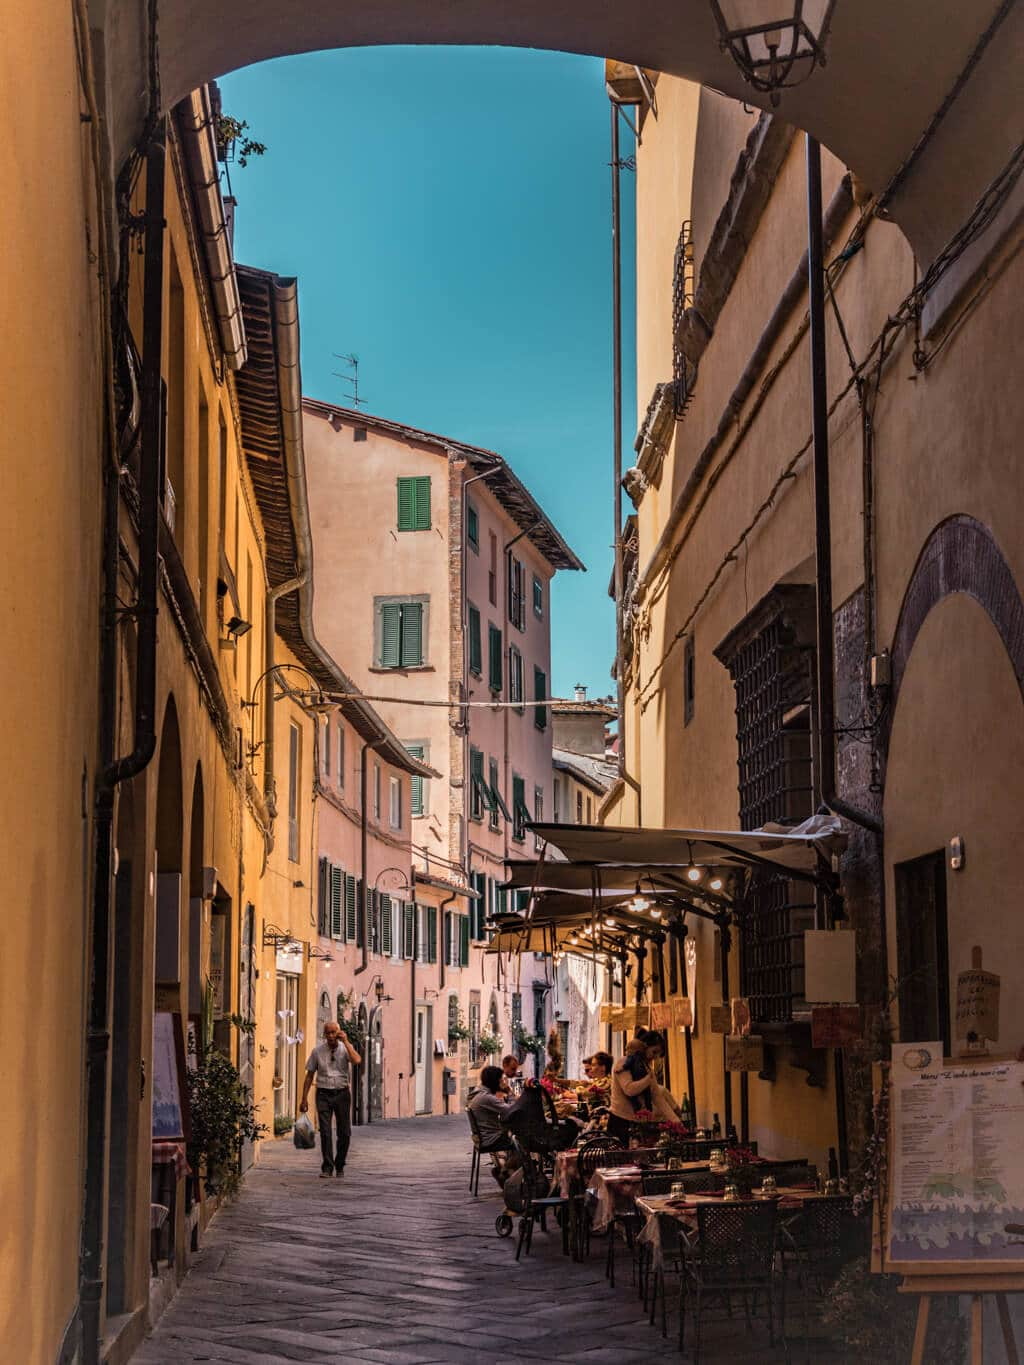 Lucca || A Guide For Planning A Trip To Tuscany, Italy - Things to do, including food & restaurants tips, wineries, and road trip tips